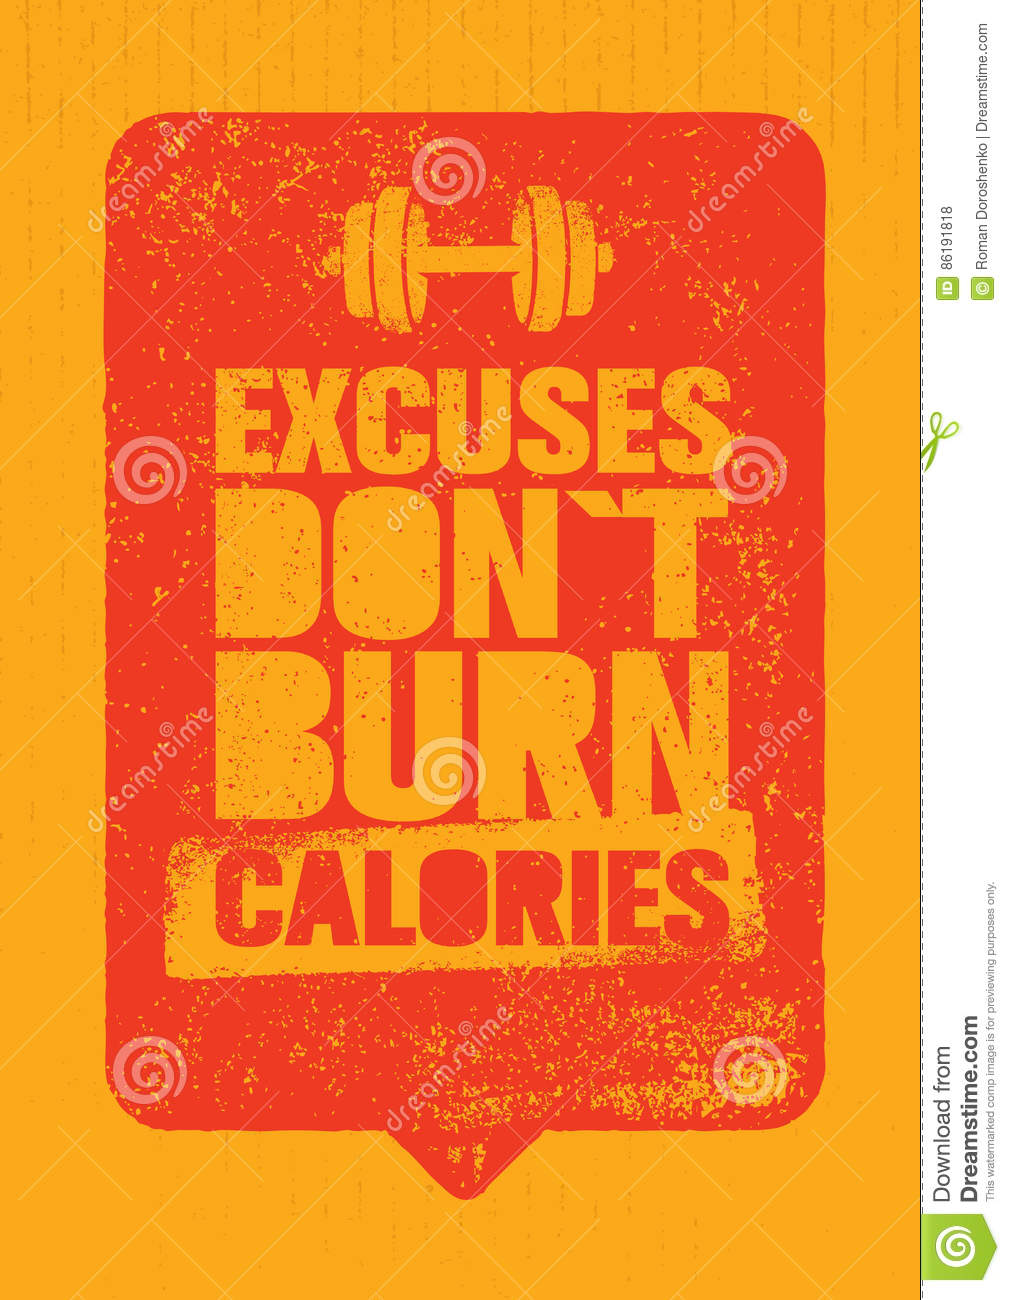 an analysis of sport calorie burn American journal of sports science  the journal has a special focus on sport  quantitative analysis of soccer referee decisions suggests referee bias.